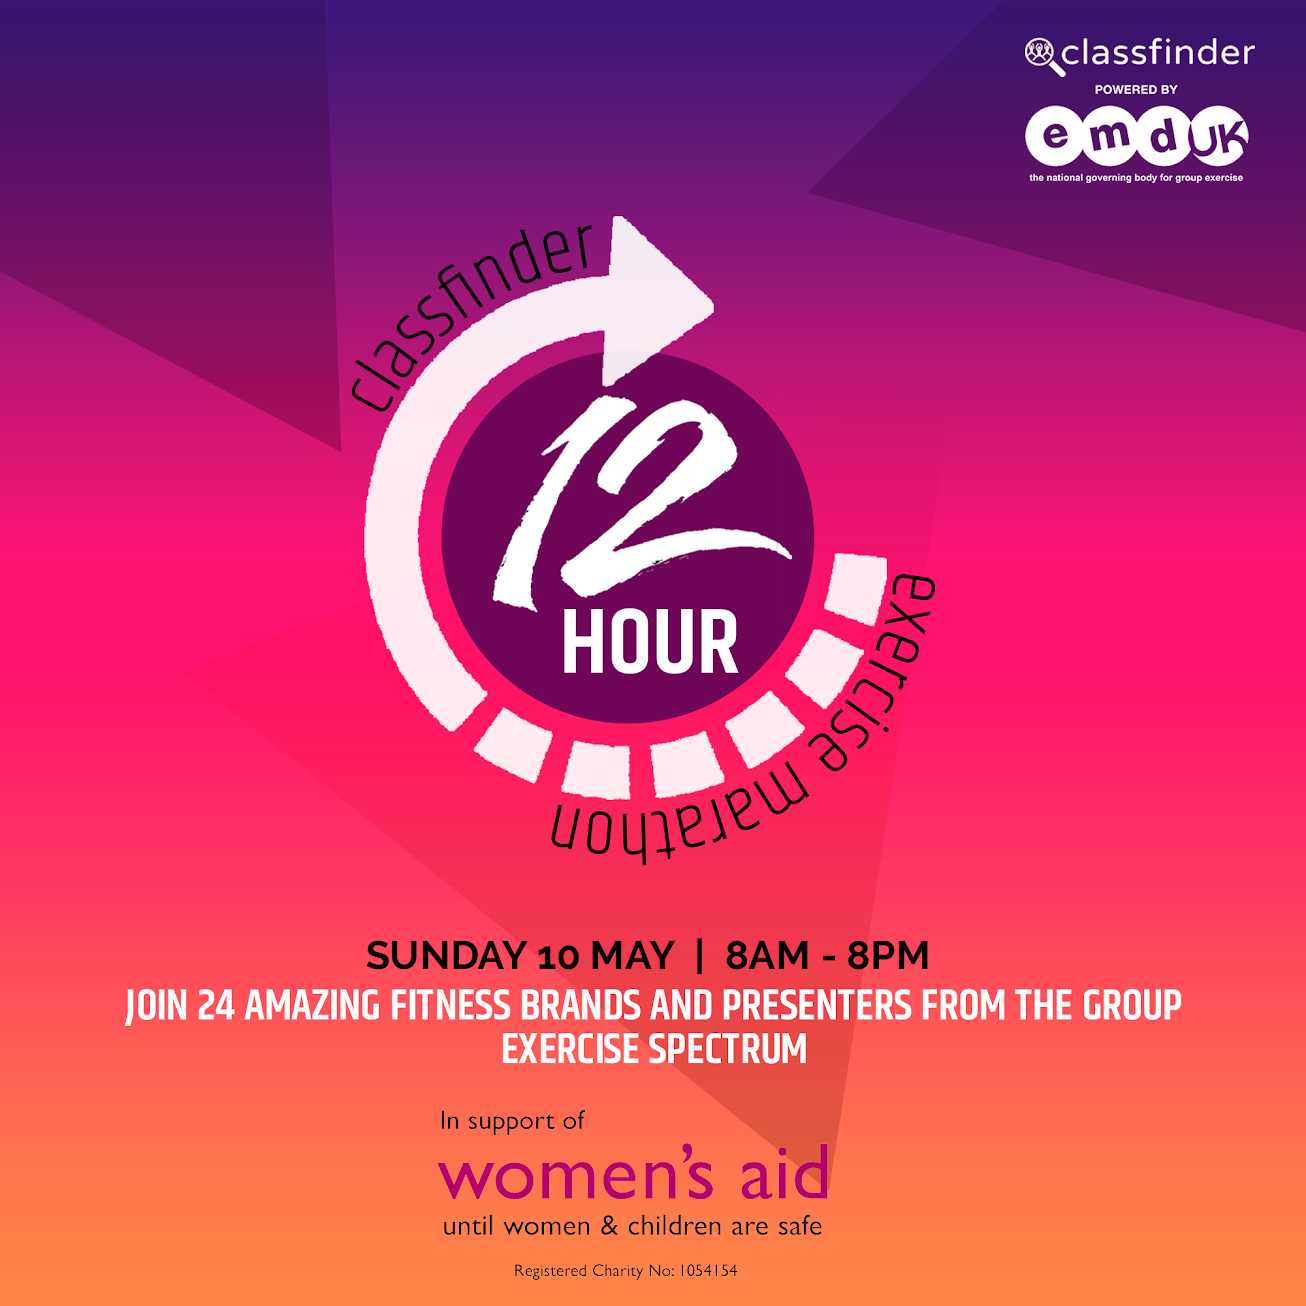 Fundraiser / EMD UK supports 12-hour exercise marathon for Women's Aid